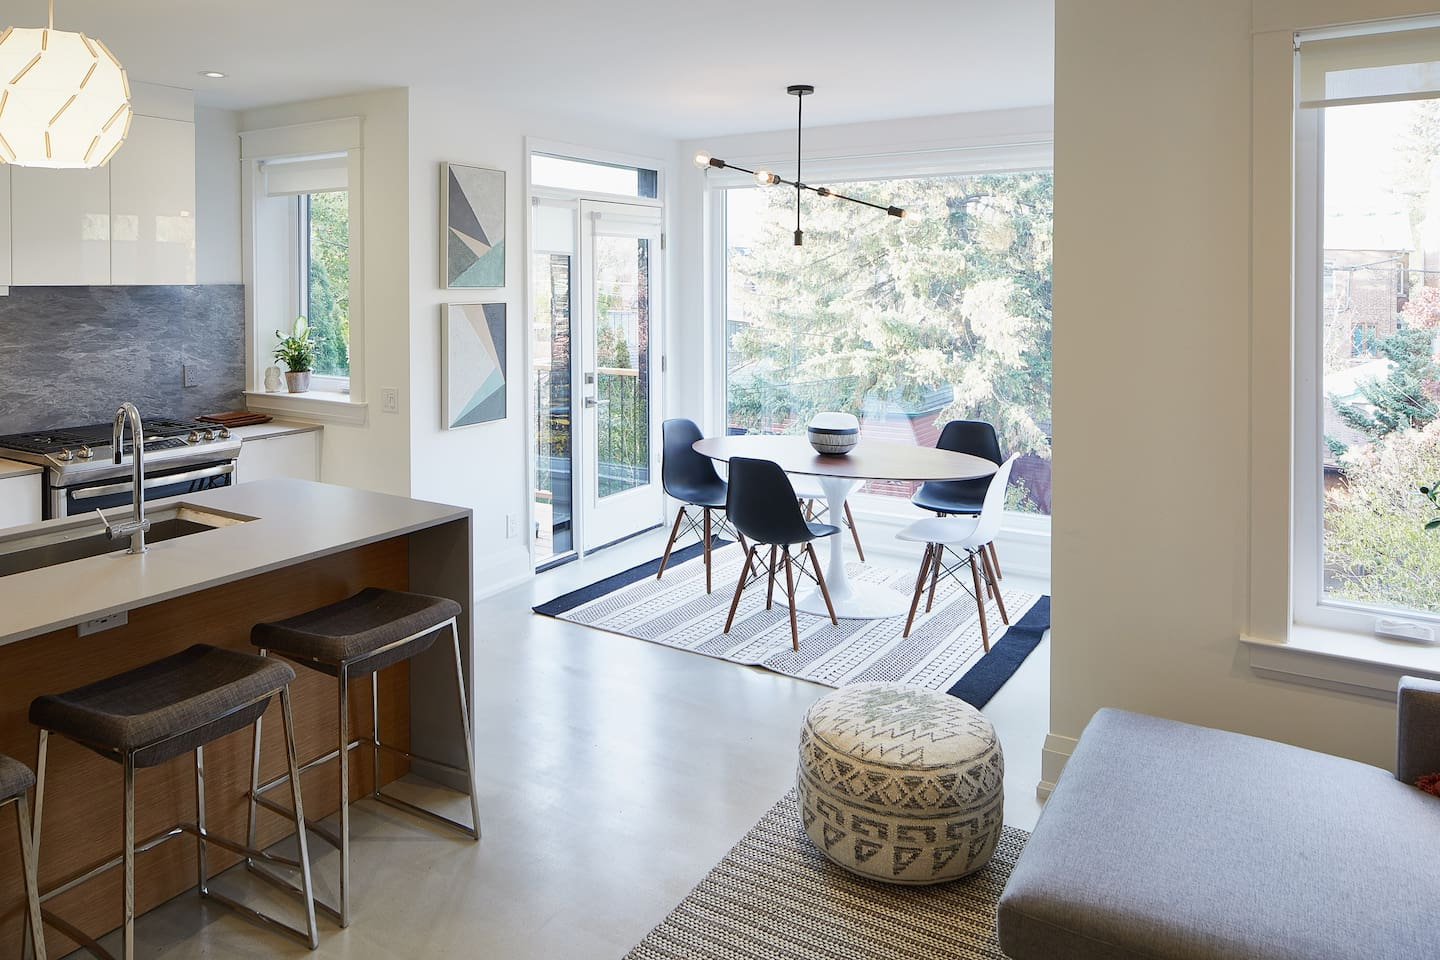 Floor-to-ceiling windows allow natural light to fill the dining room, living room and kitchen.